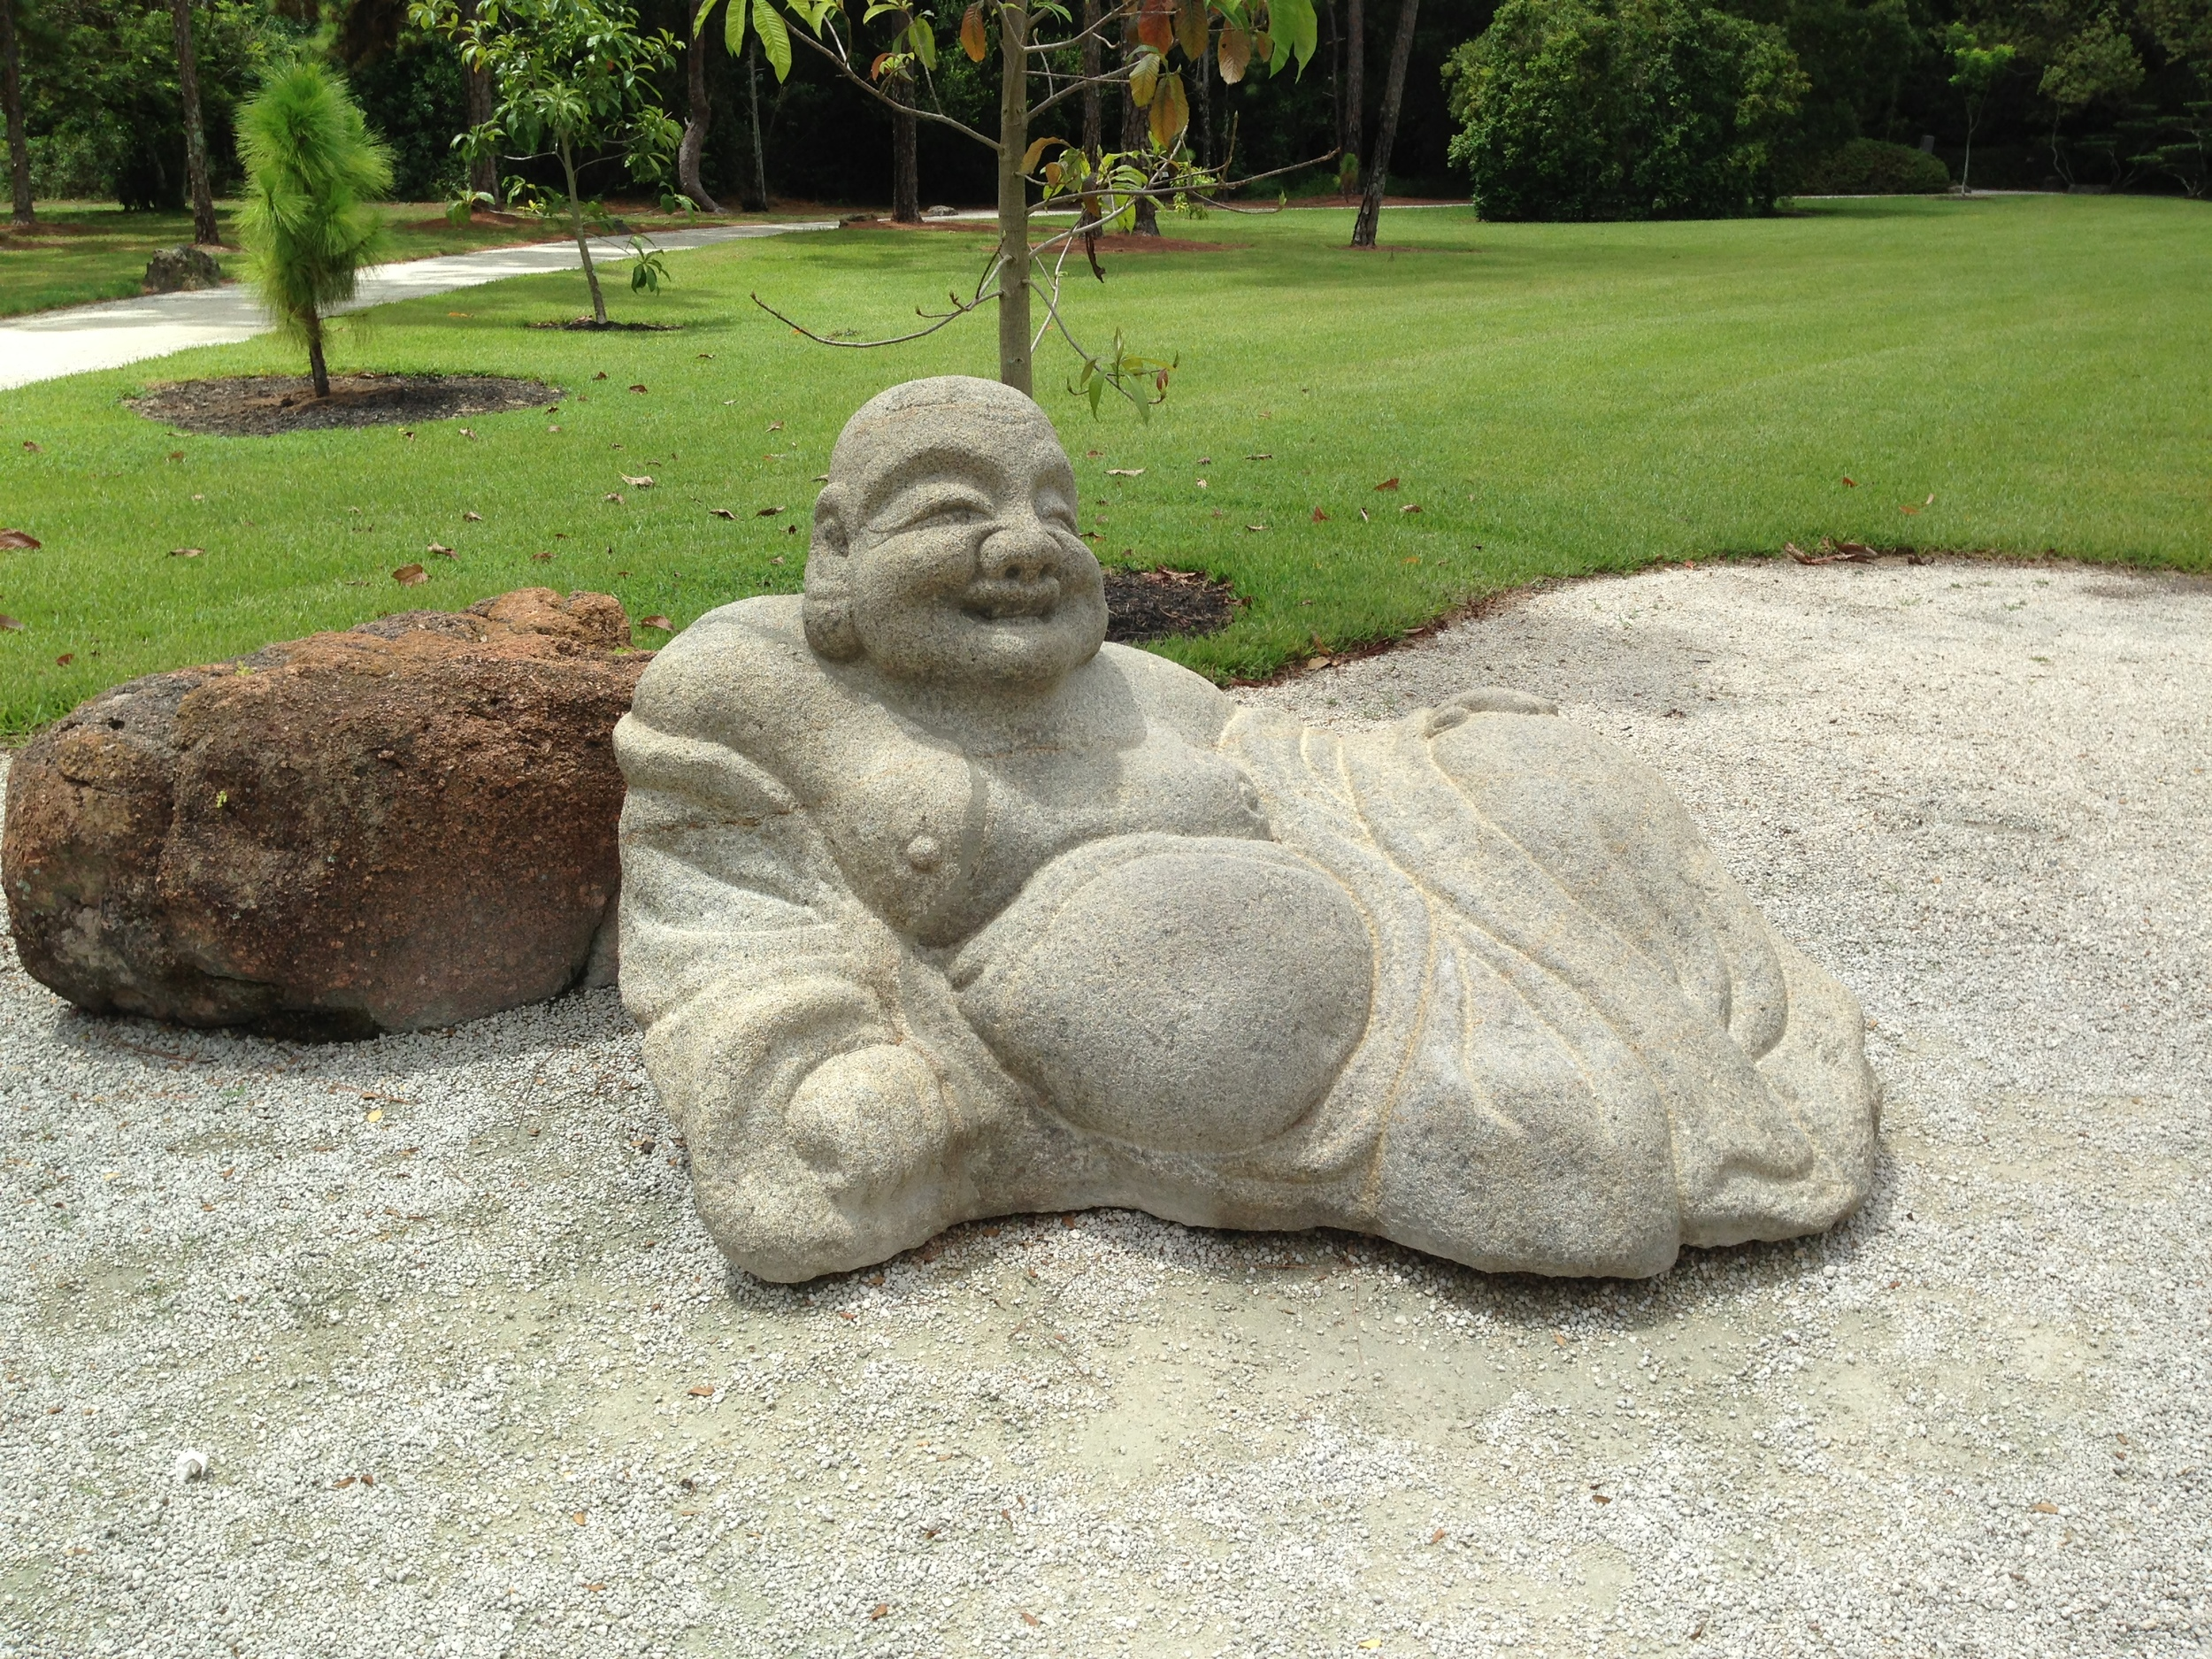 Buddha in repose at Morikami Gardens